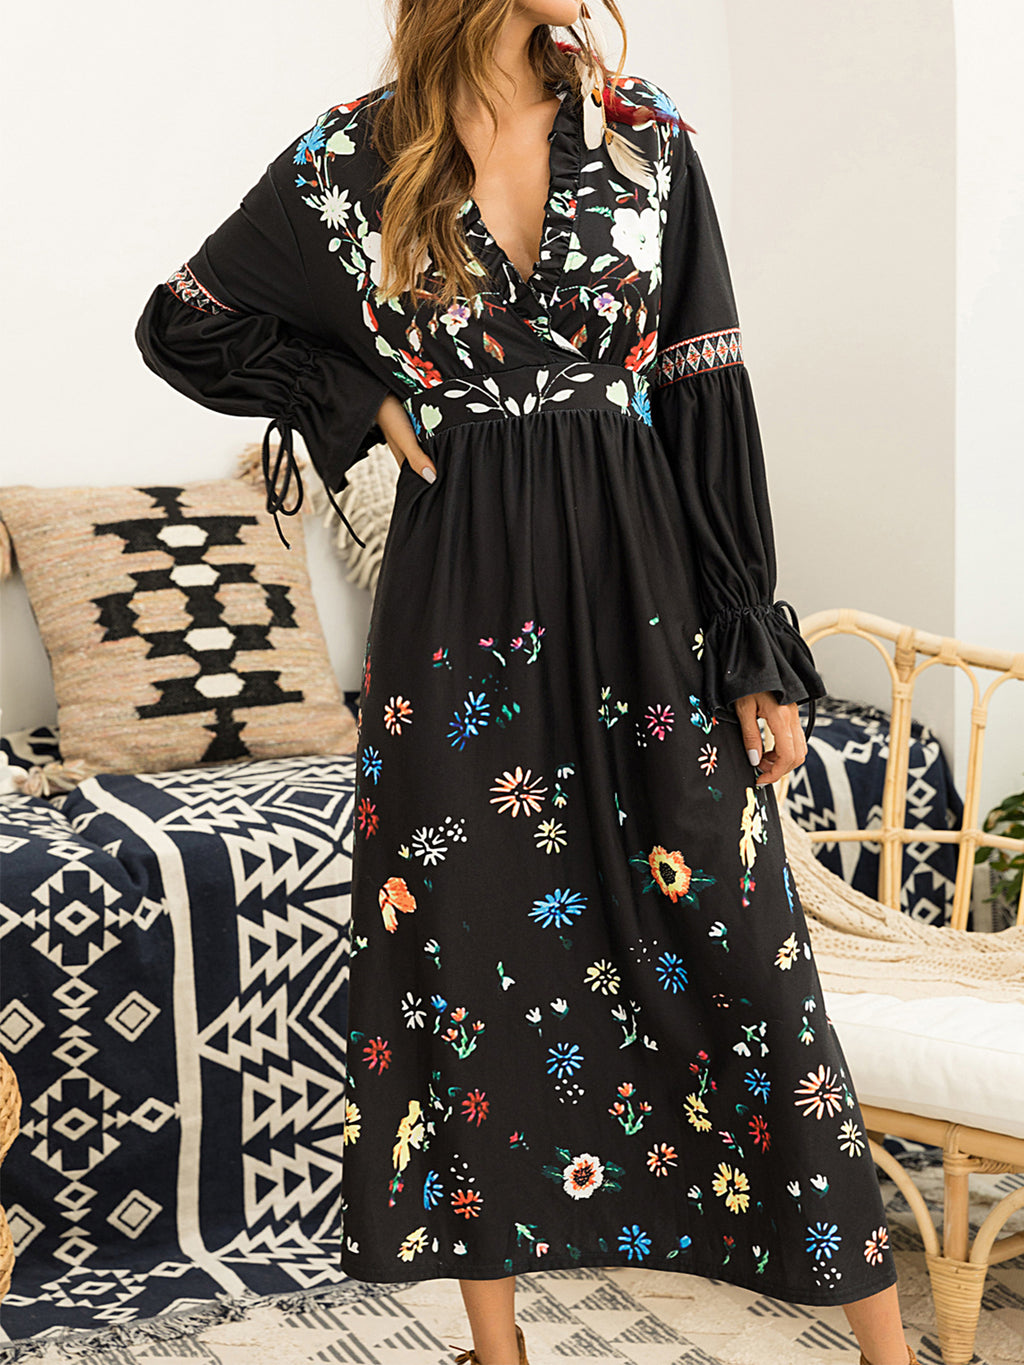 Bohemia Black Floral Printing Mid-calf Gathering Dress